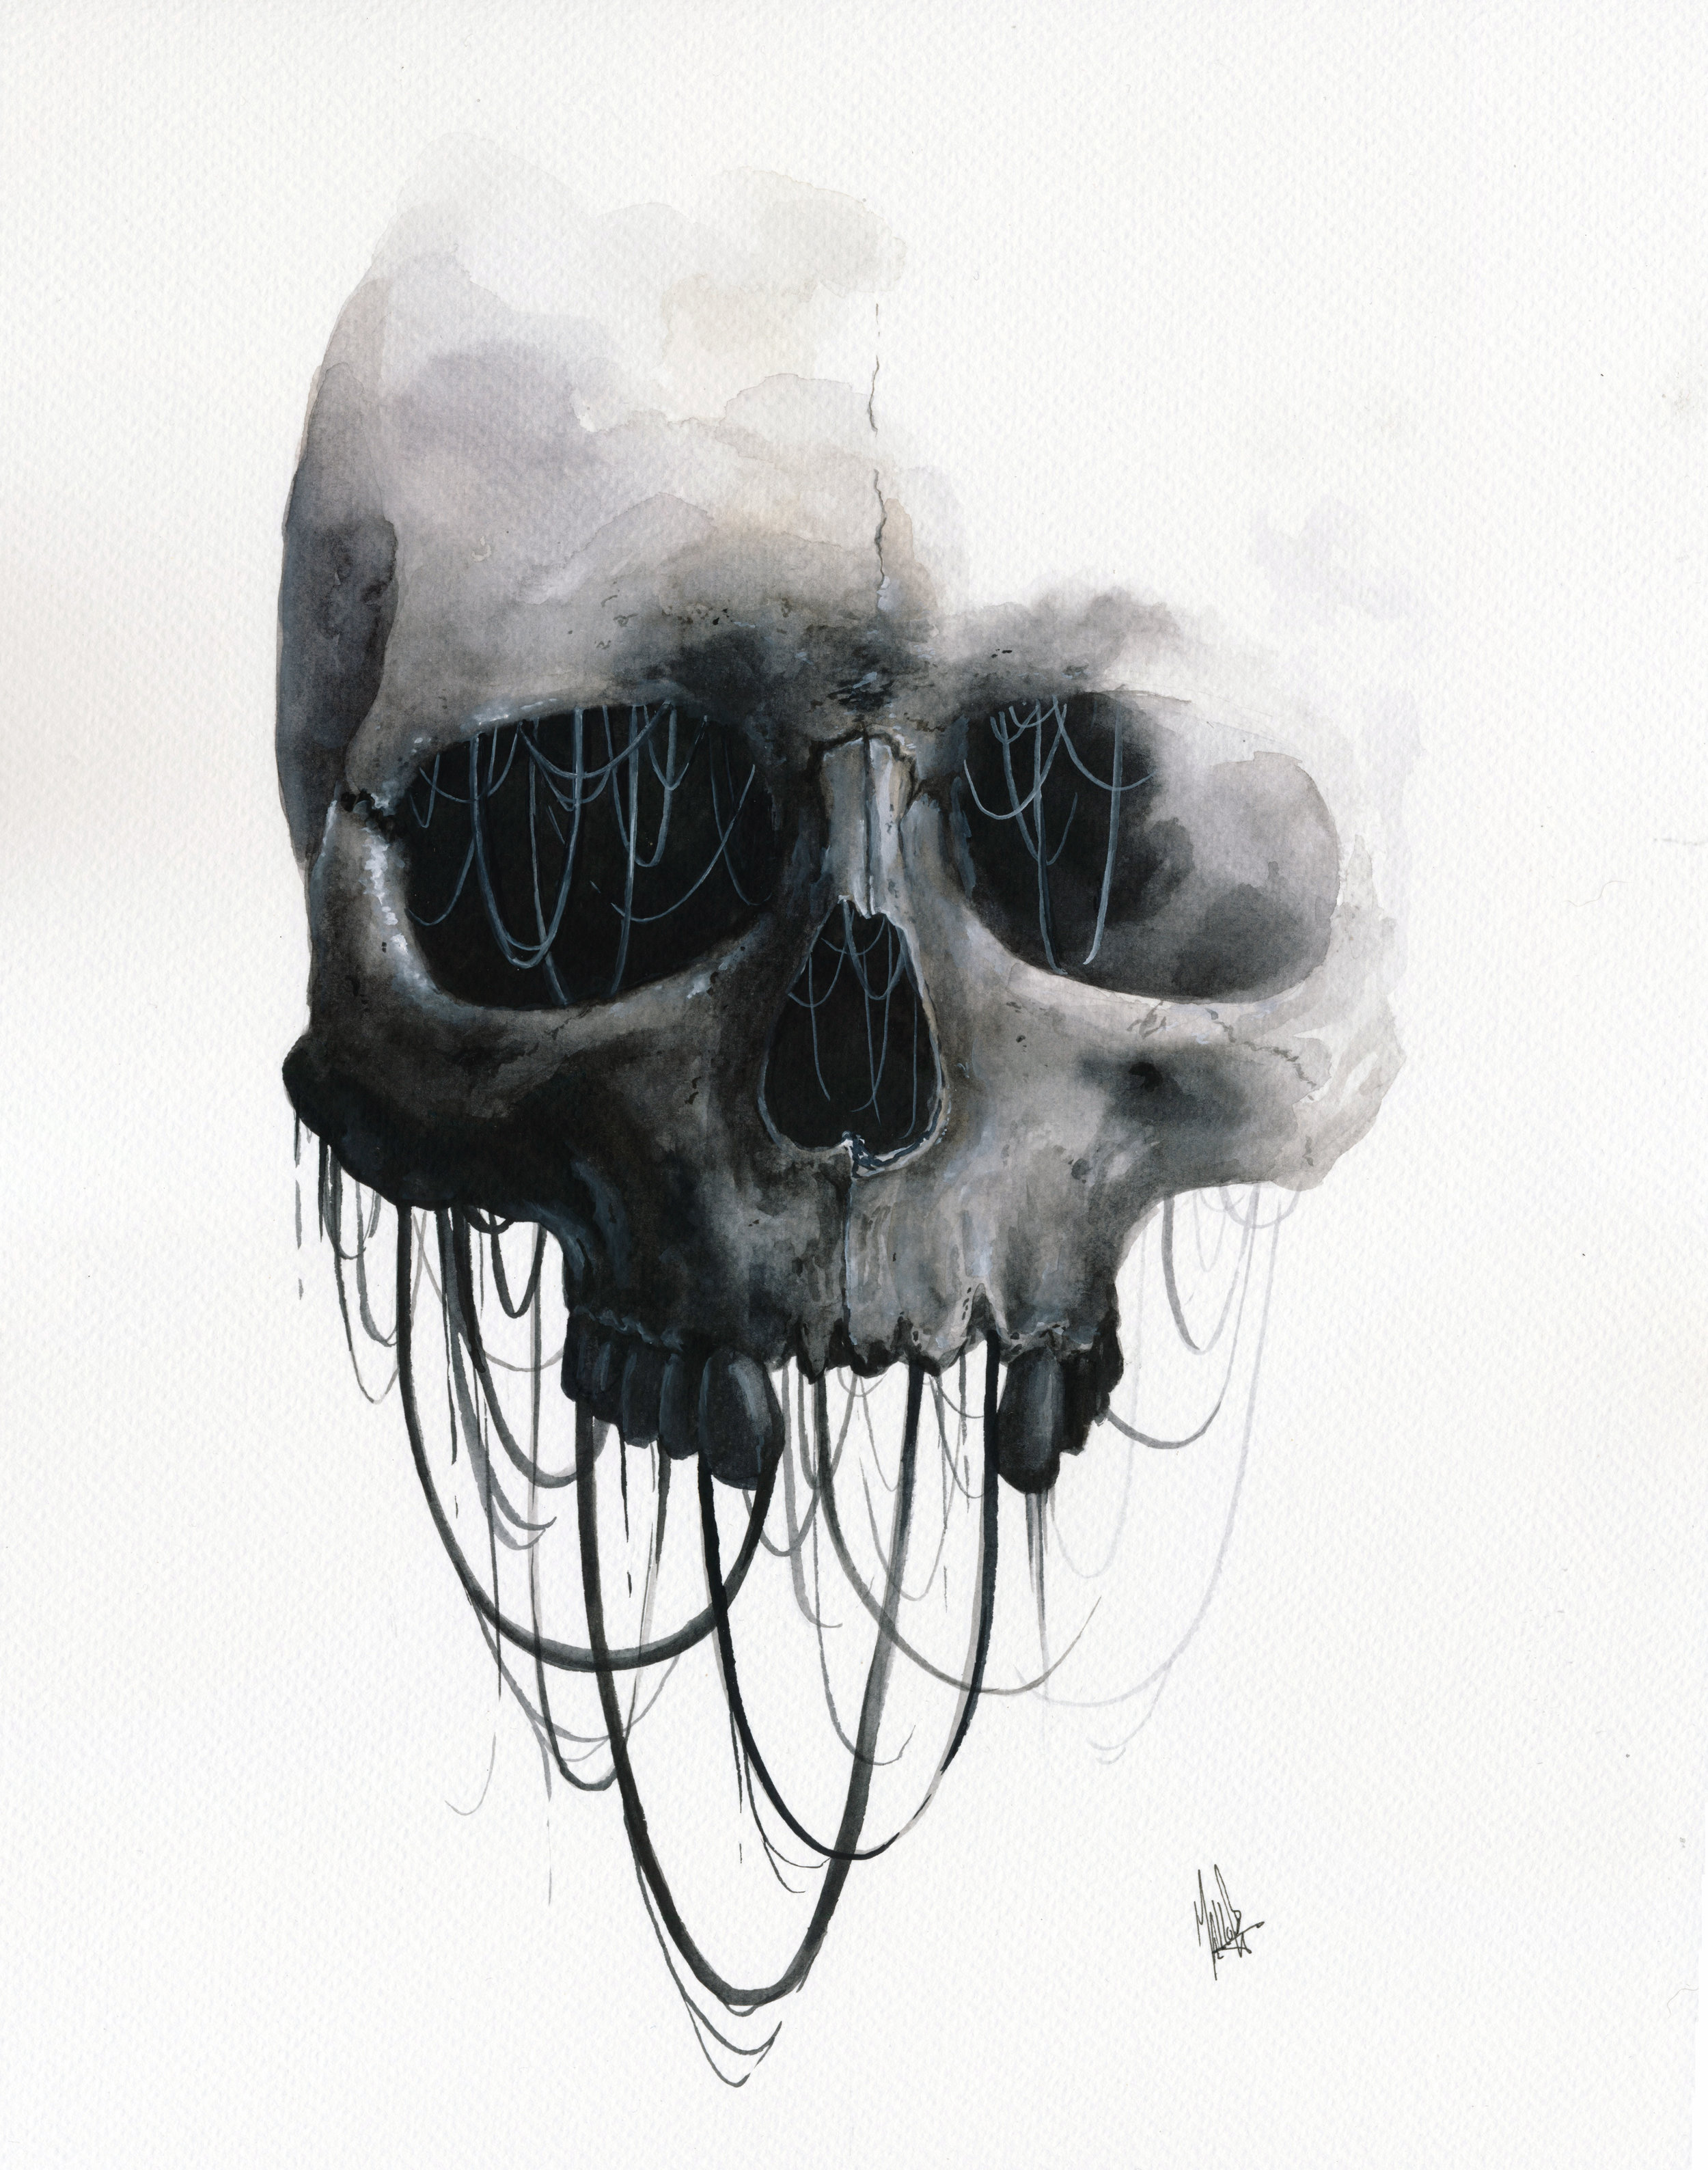 Skull_With_Hanging_Wires.jpg